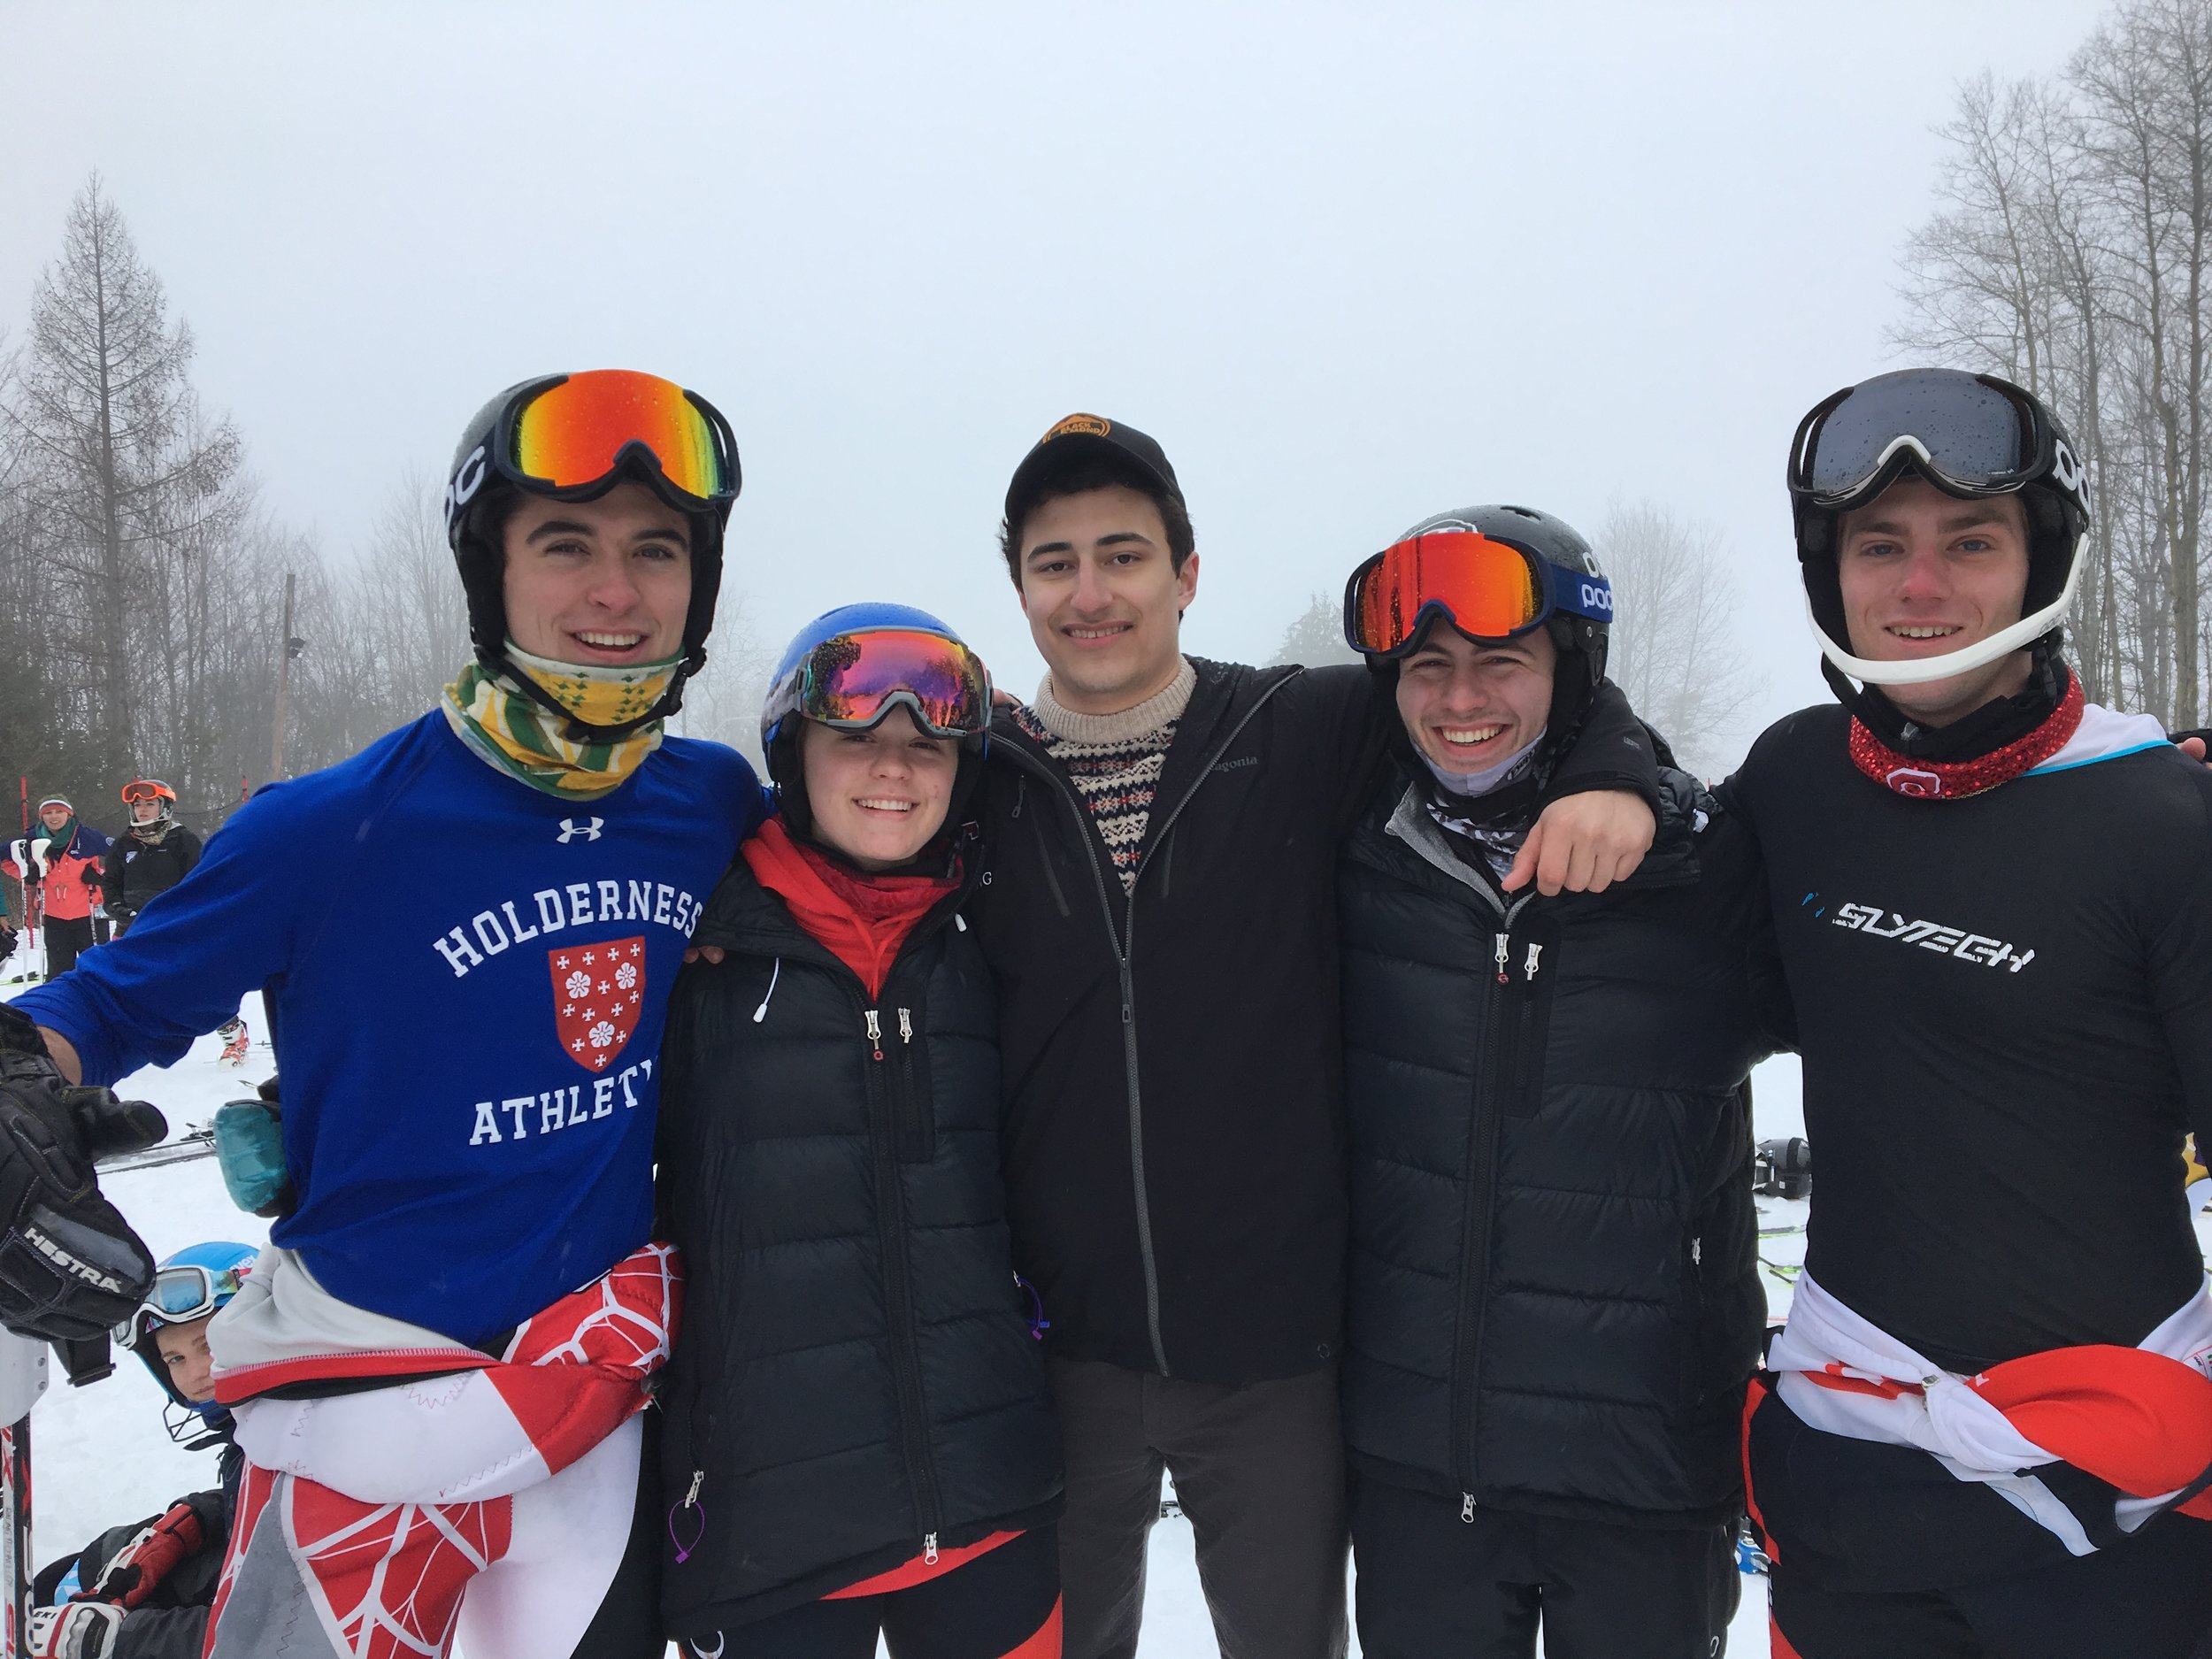 Pictured are: Morgan Dawkins (William and Hobart Smith), Elise Michaels (Cornell), Ryan Skinner (Cornell), Simon Ludl (SUNY Binghamton), and Sean Giannotto (Cornell) at a MidEast Division race at Greek Peak this past weekend.